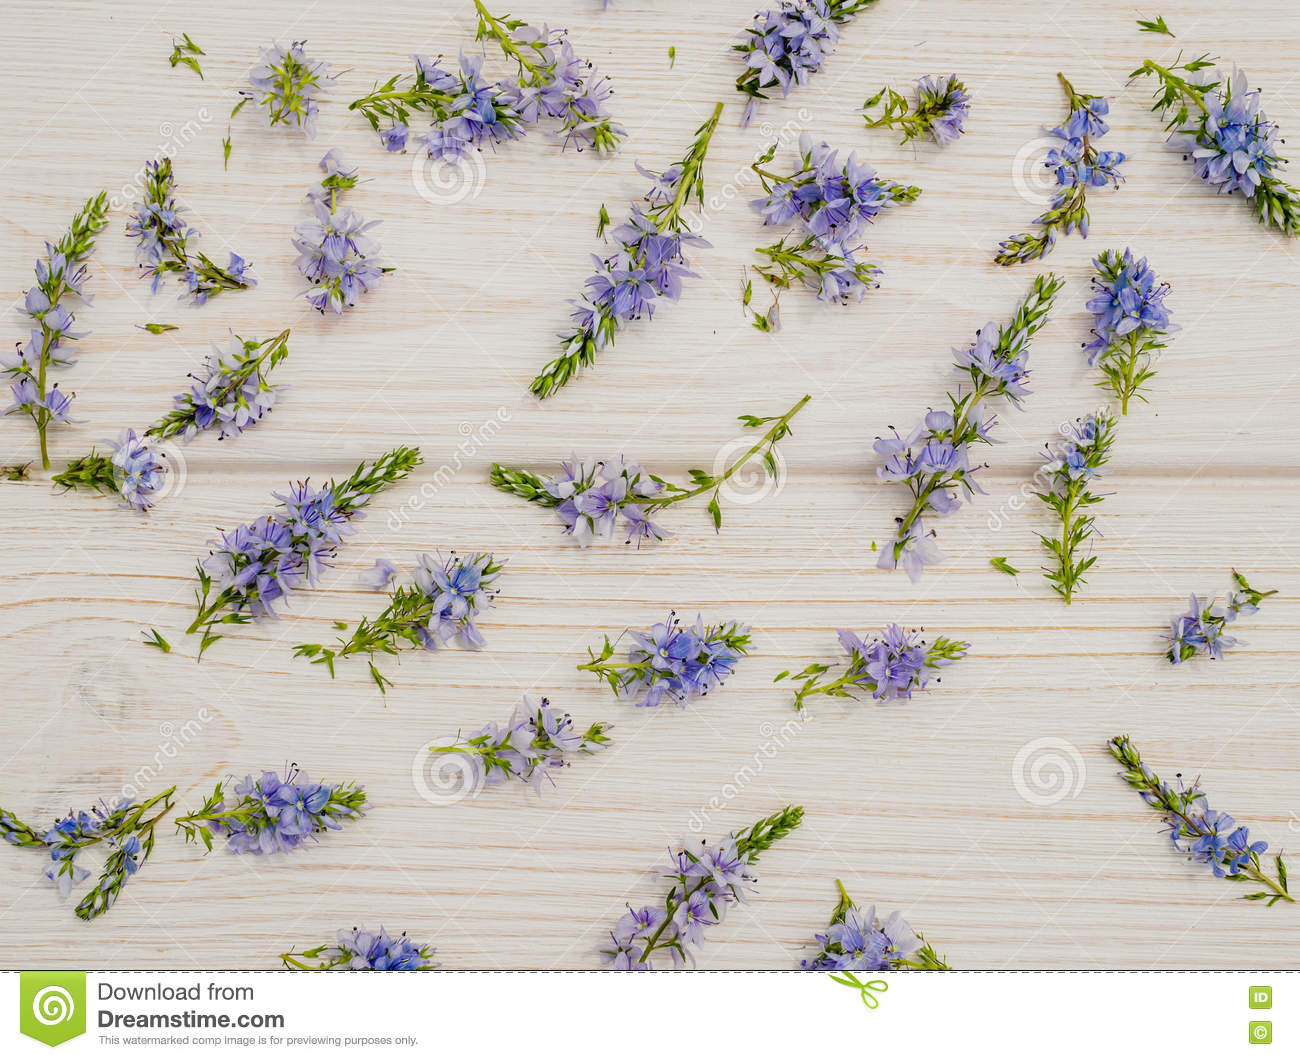 Background in the style of Provence. Delicate blue cornflowers and white wood